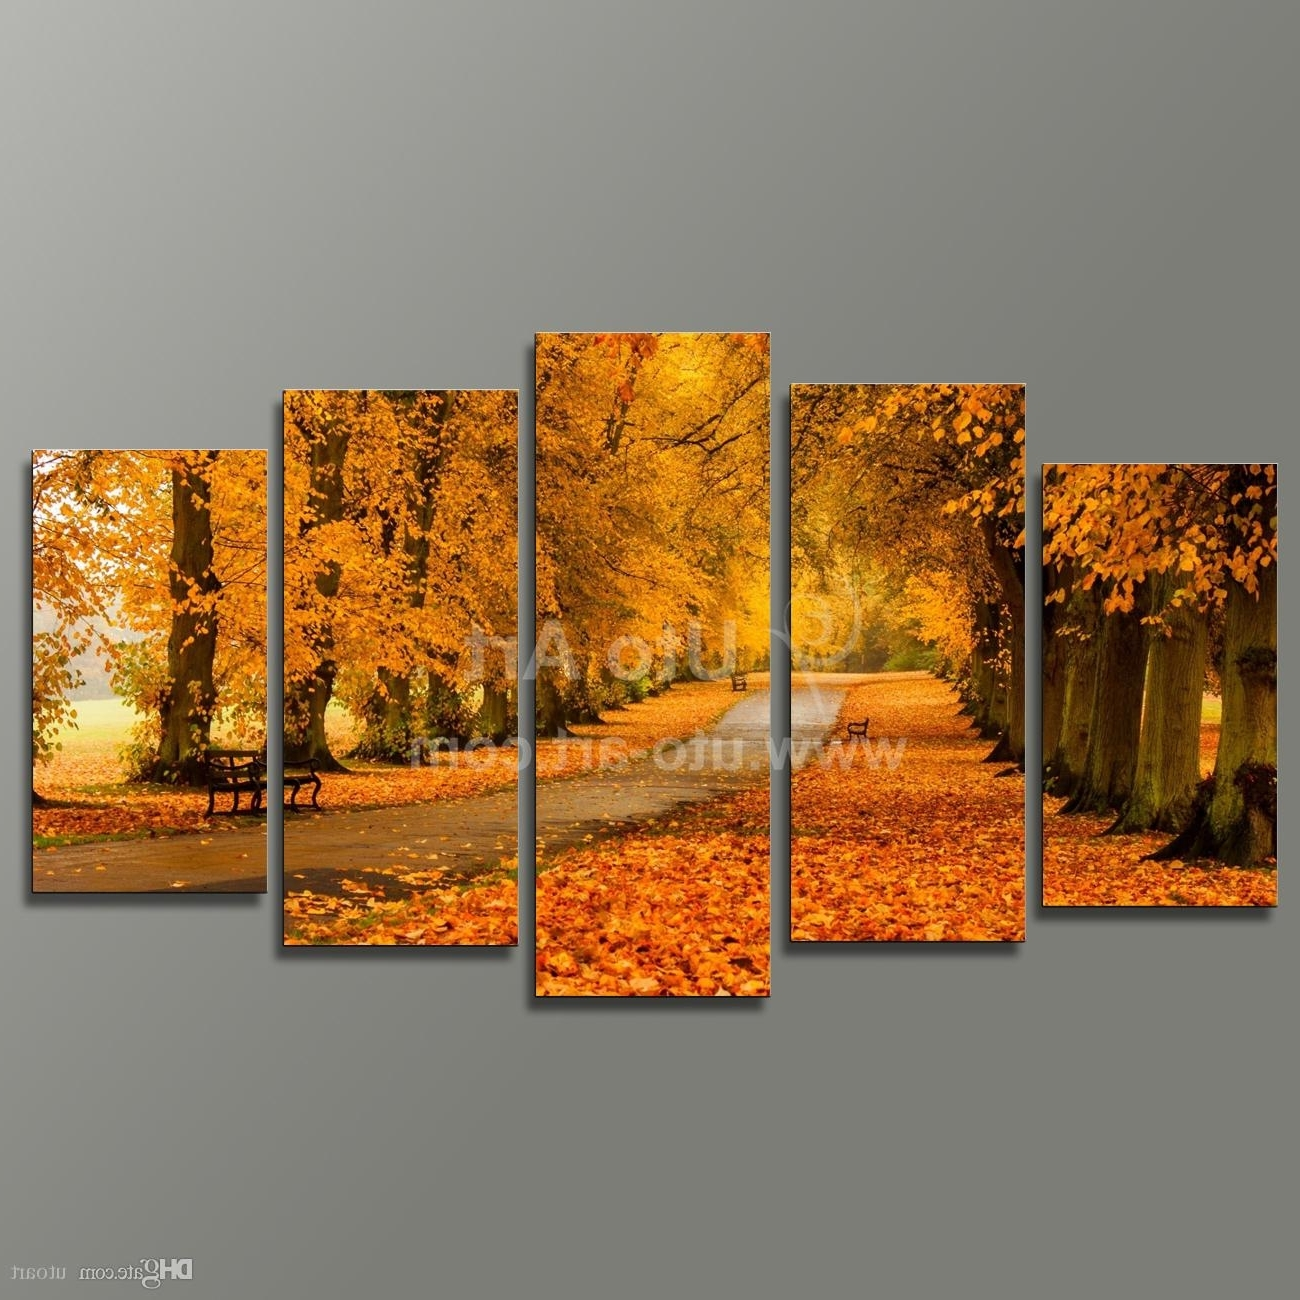 Wall Art Canvas Pertaining To Famous Best Modern Modular Paintings On Canvas 5 Panel Wall Art Painting Of (View 9 of 15)